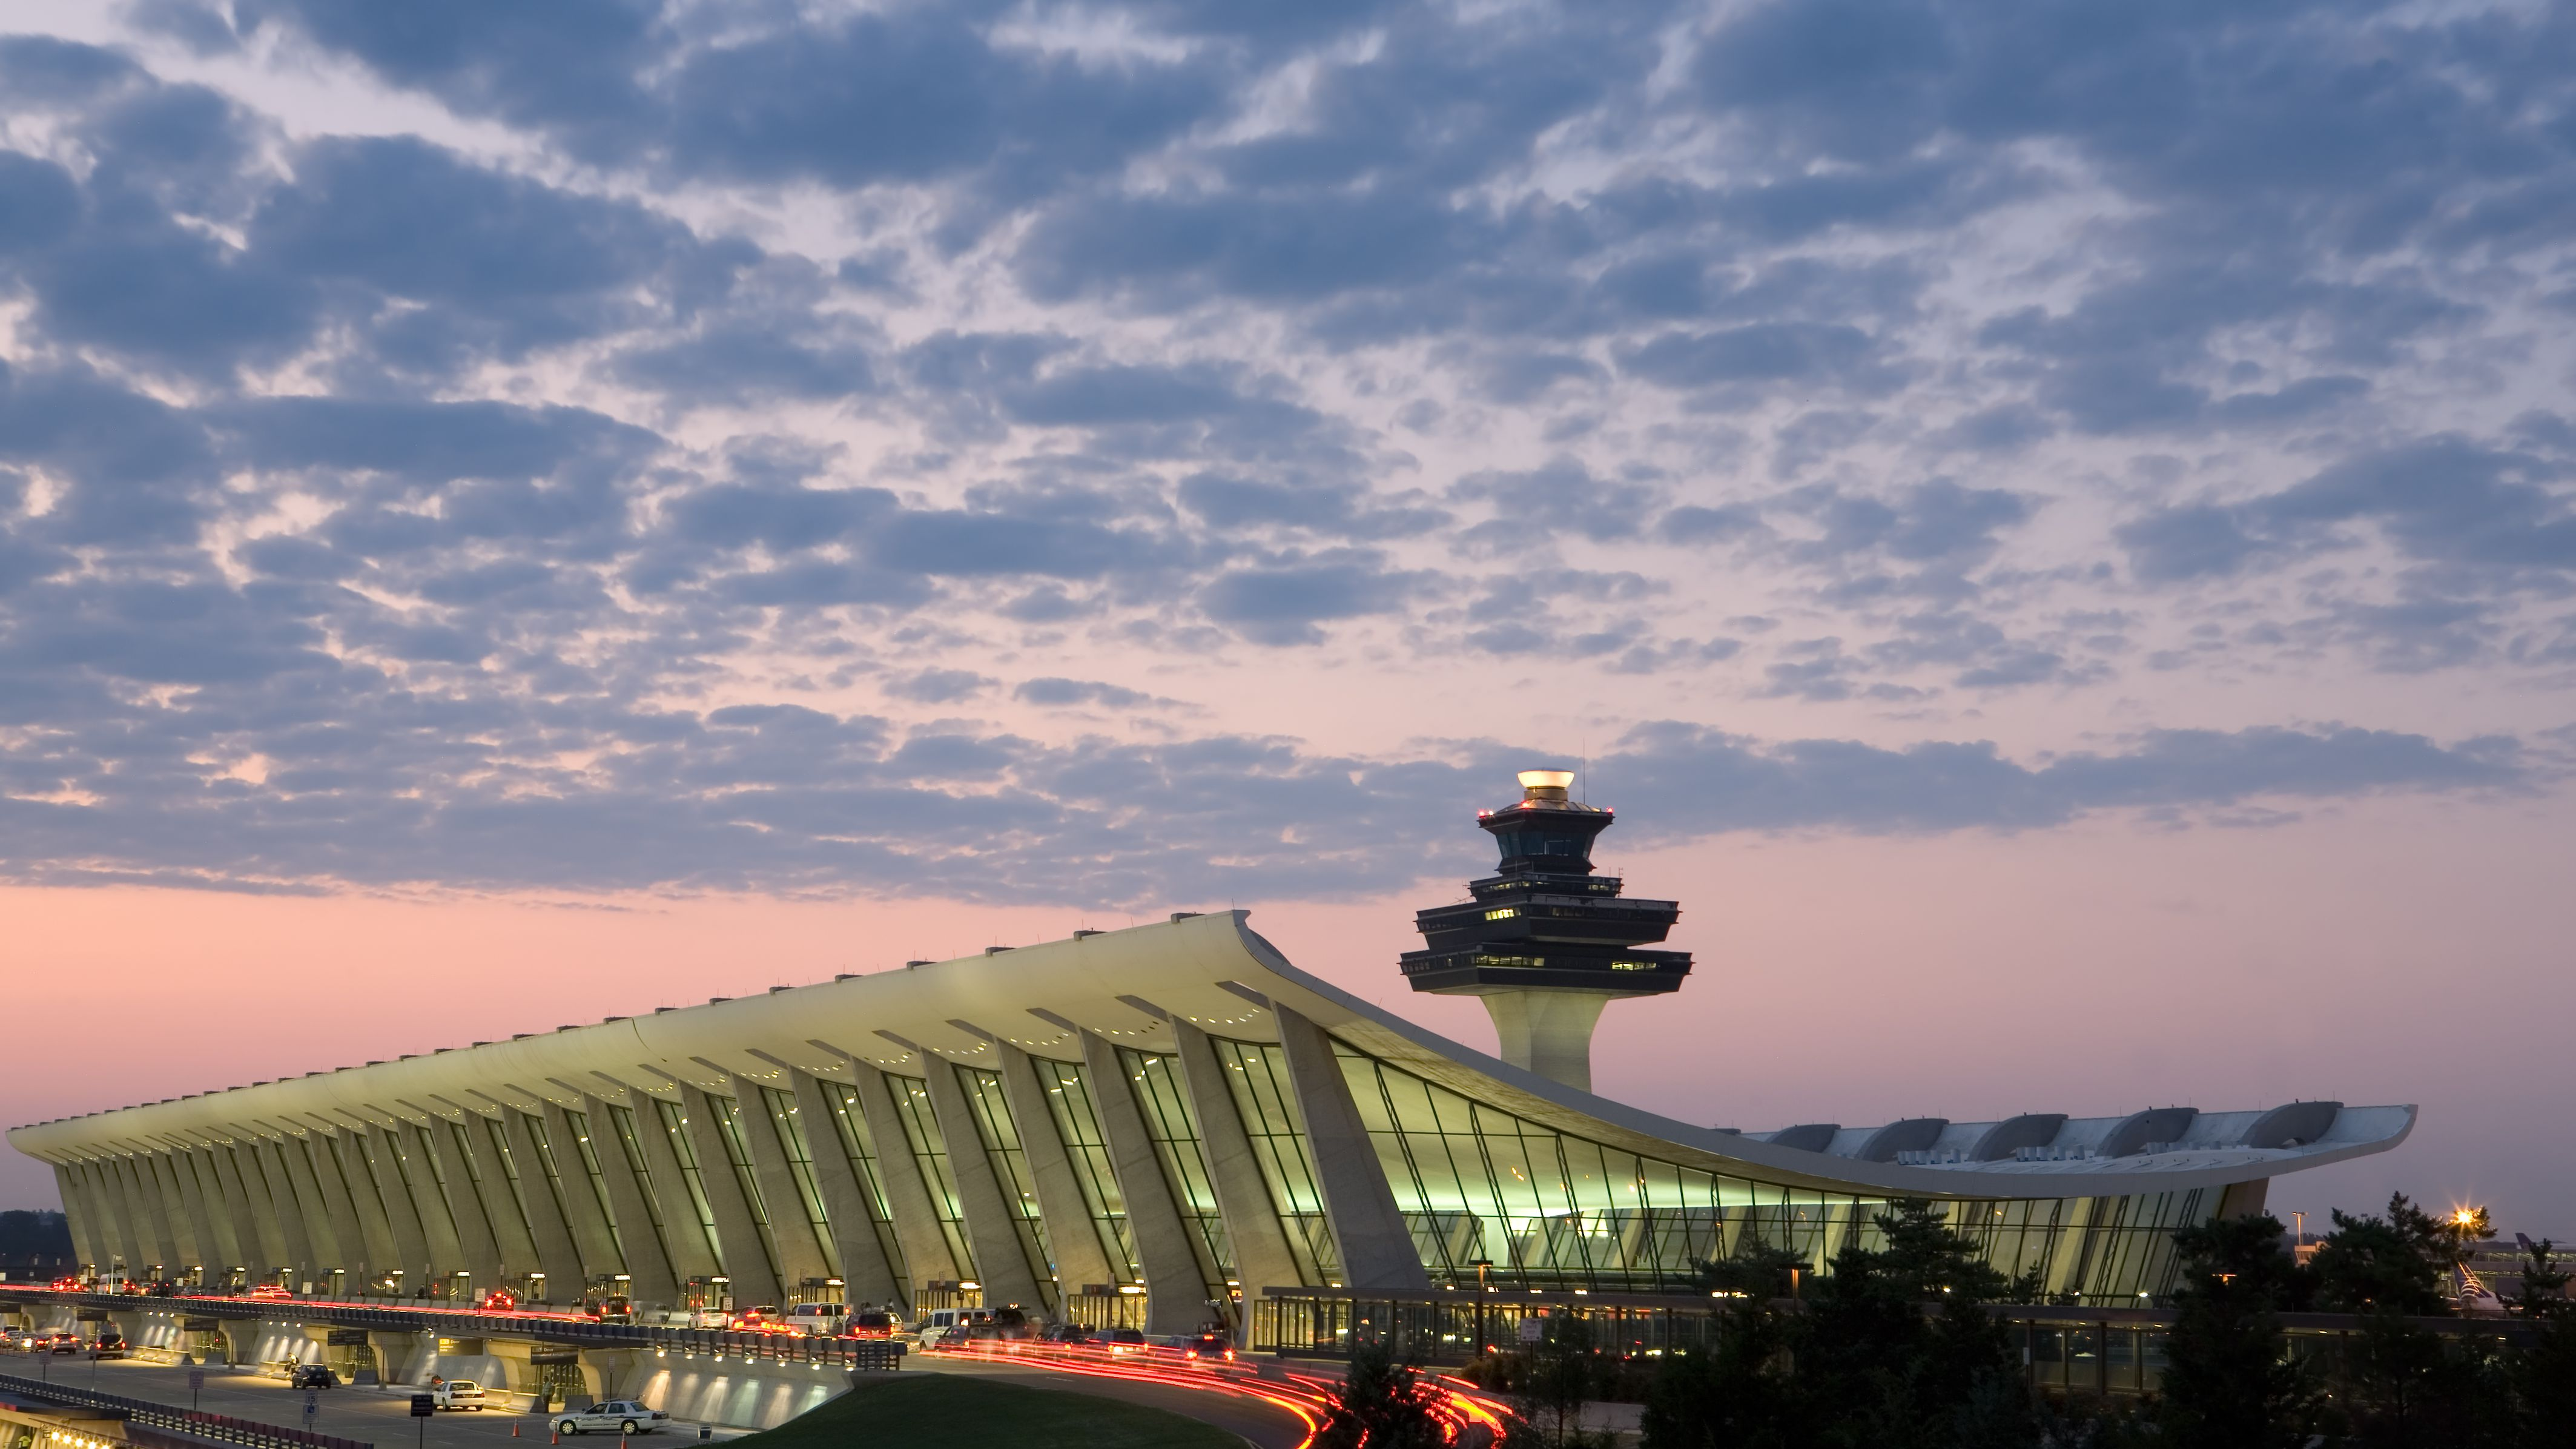 Getting to Dulles Airport (IAD) From Washington, DC